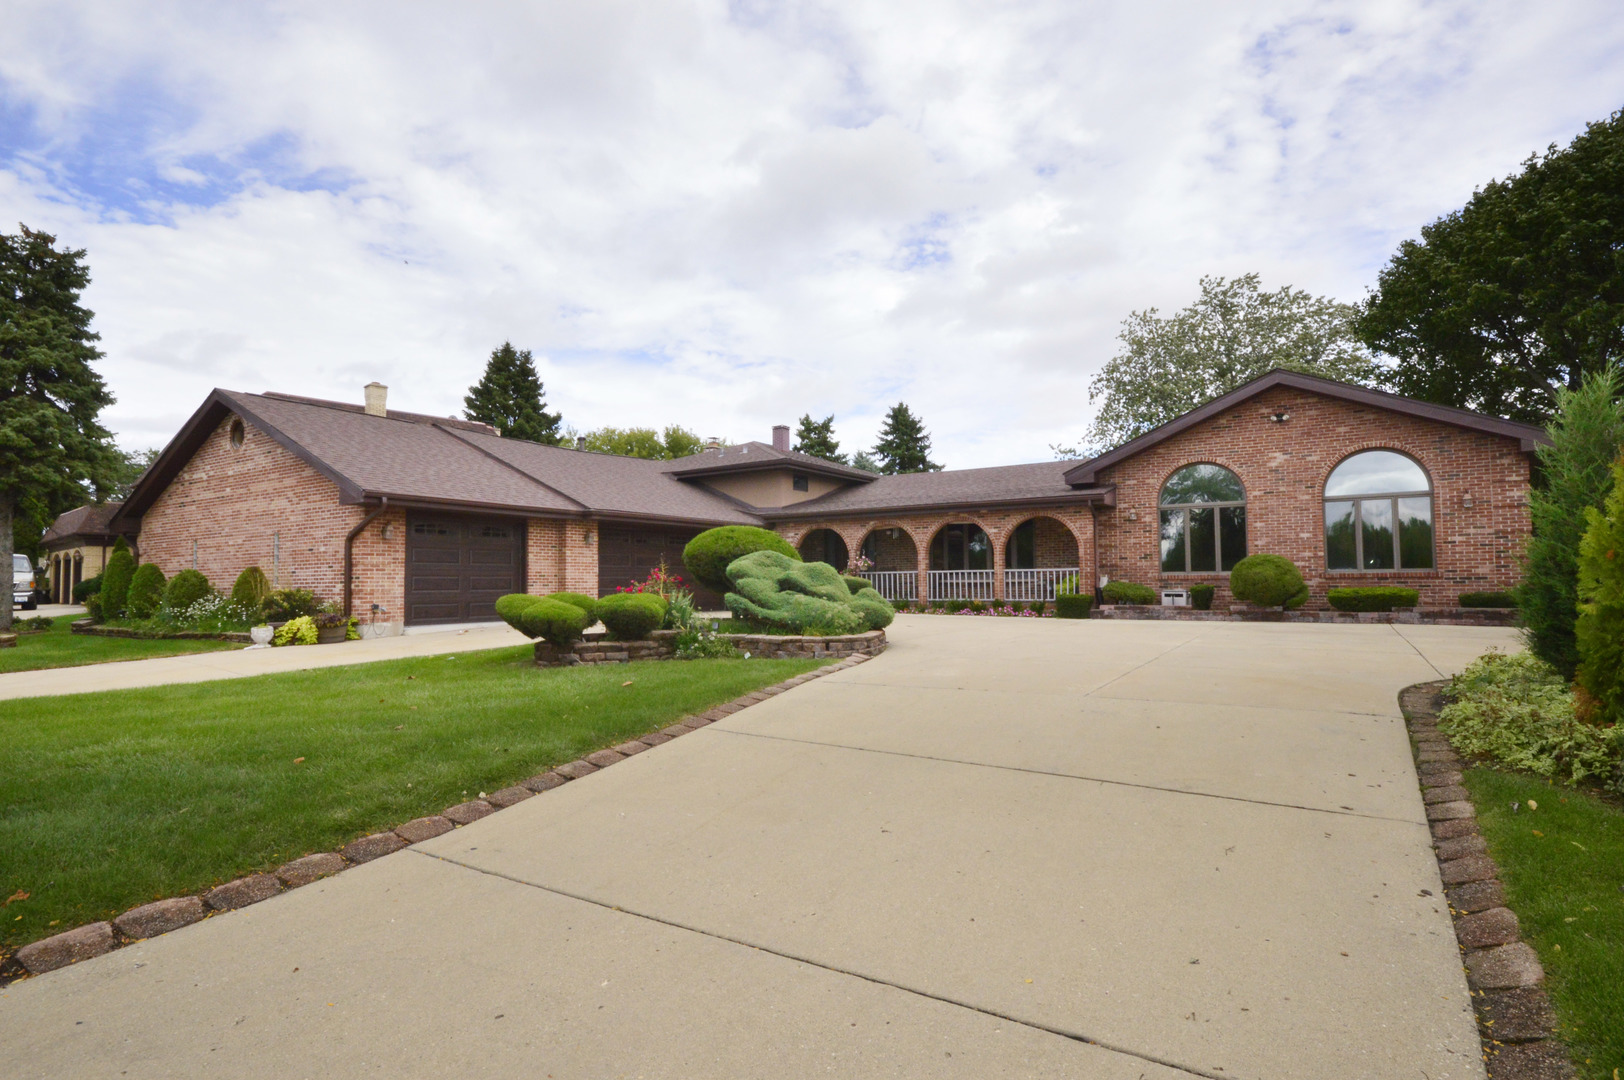 61 South Arlington Heights Road, Elk Grove Village, Illinois